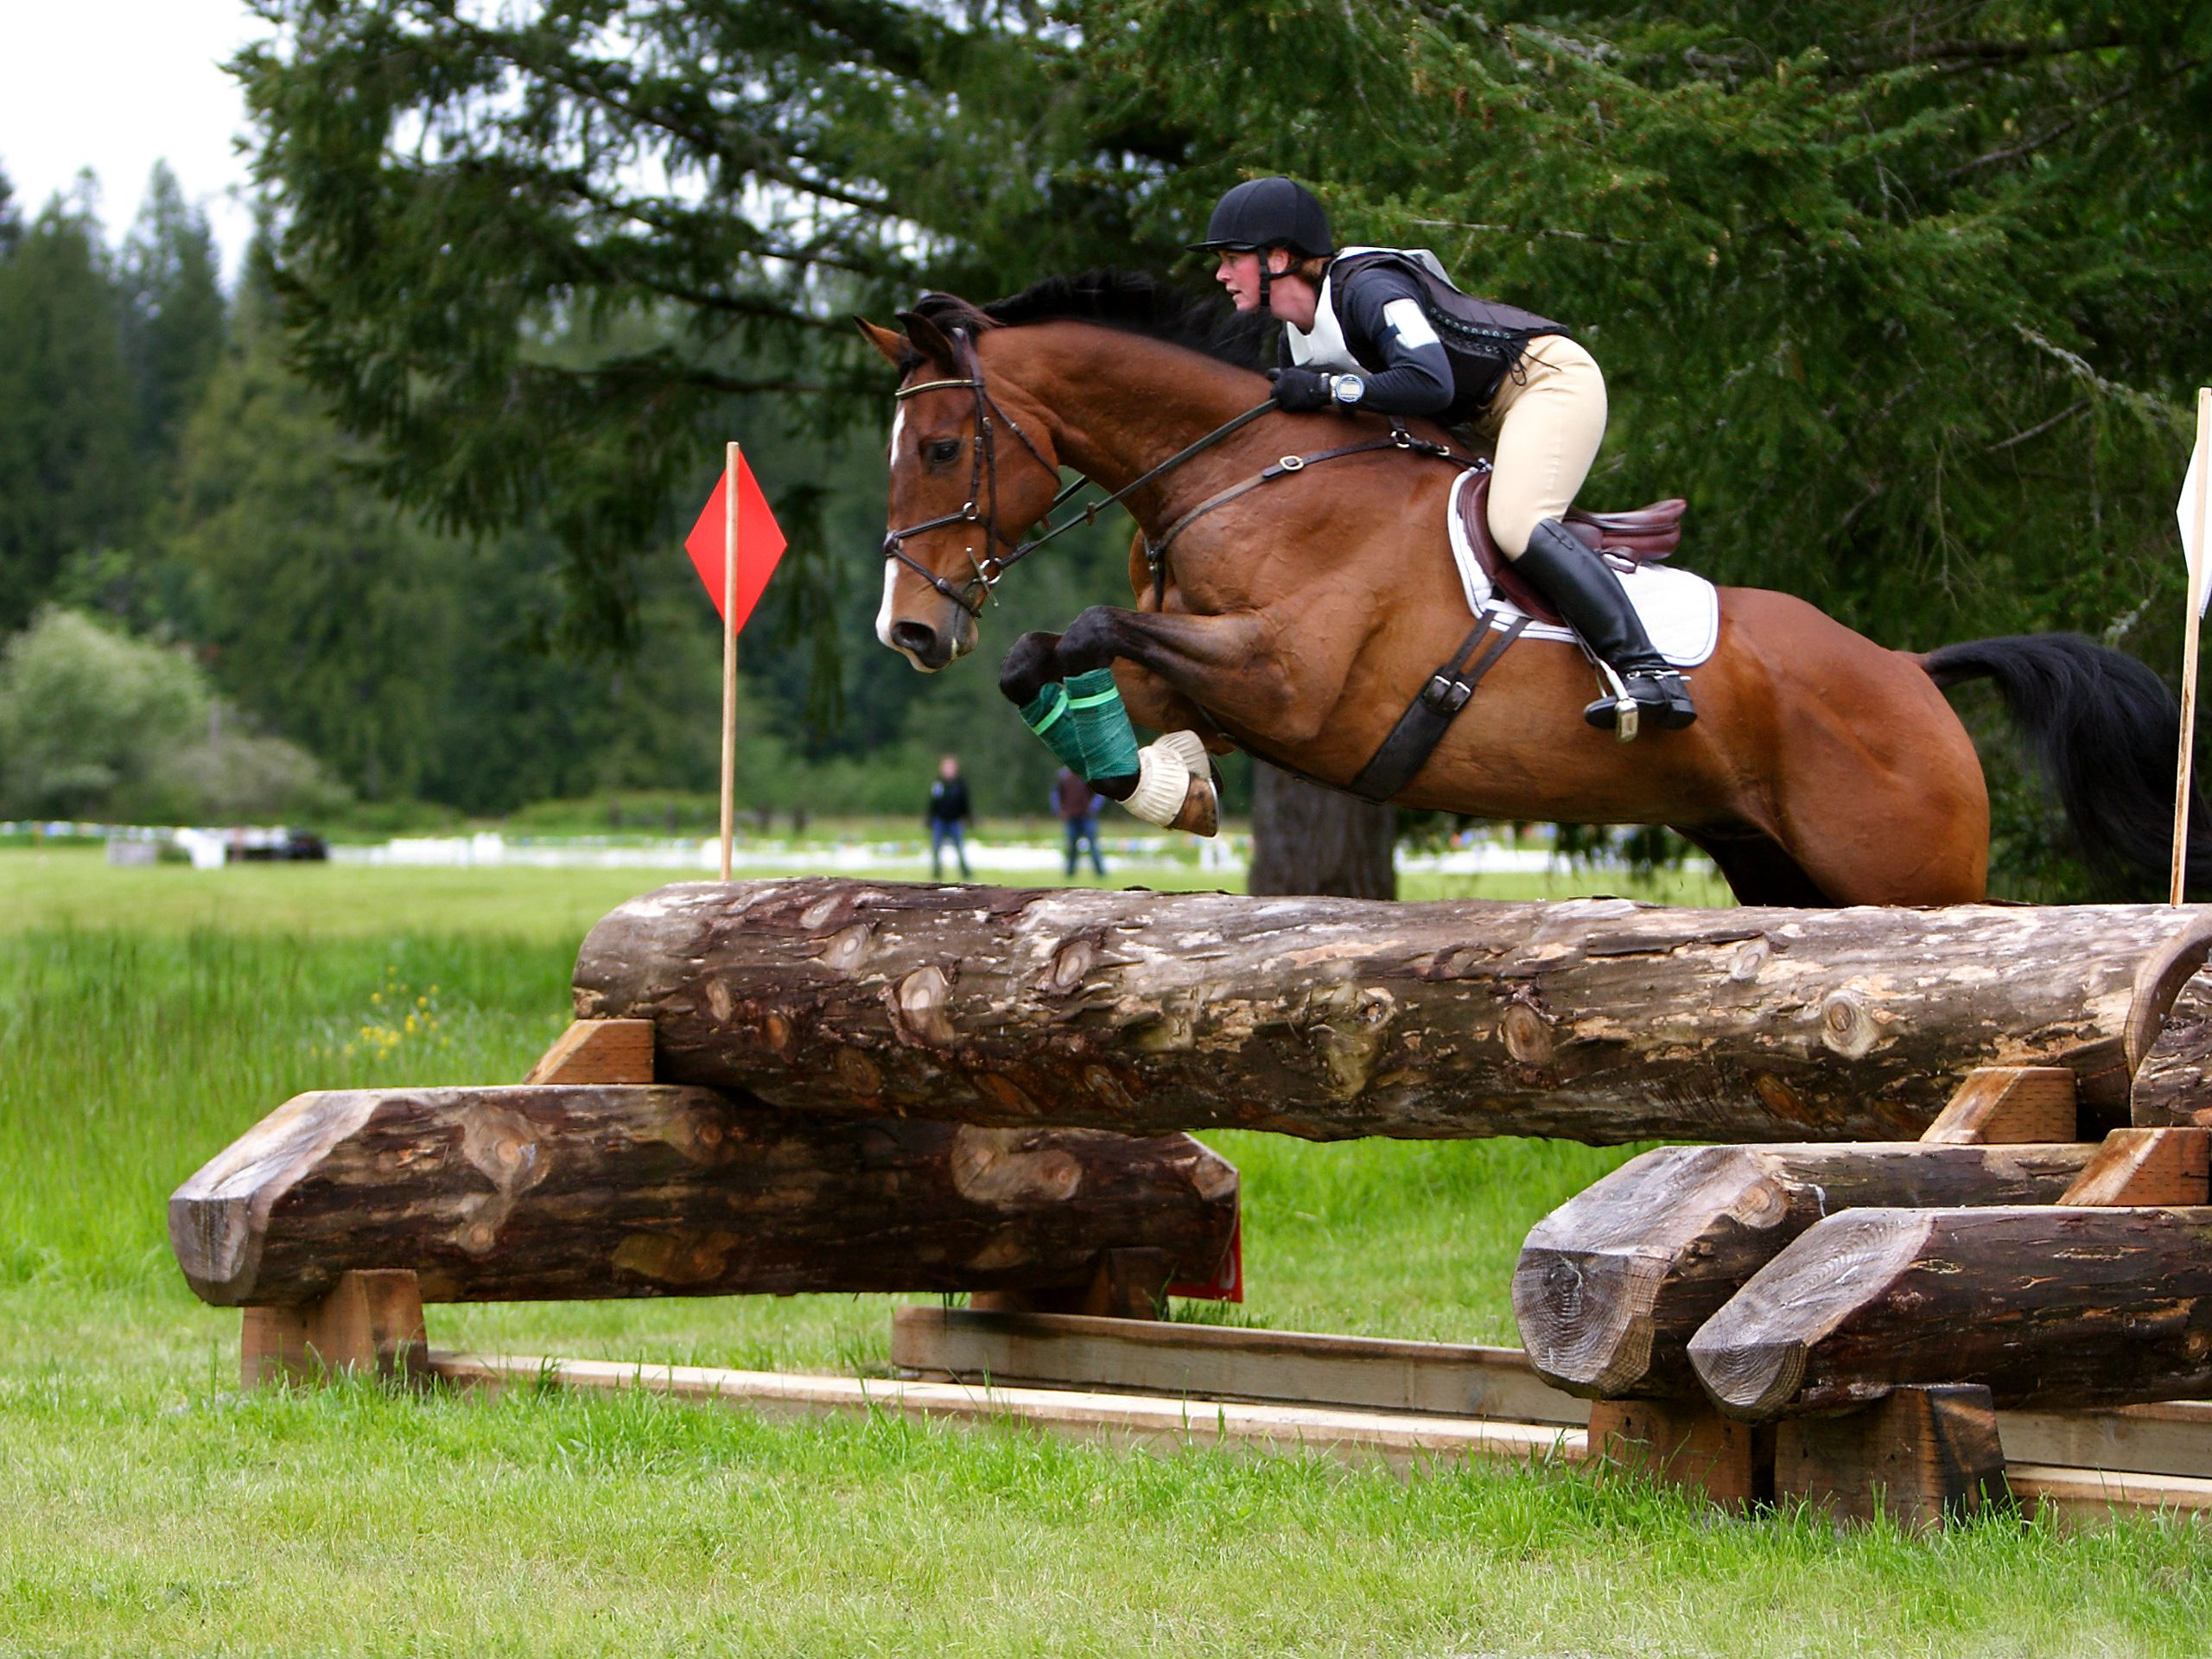 Cross Country Equestrian Jumping